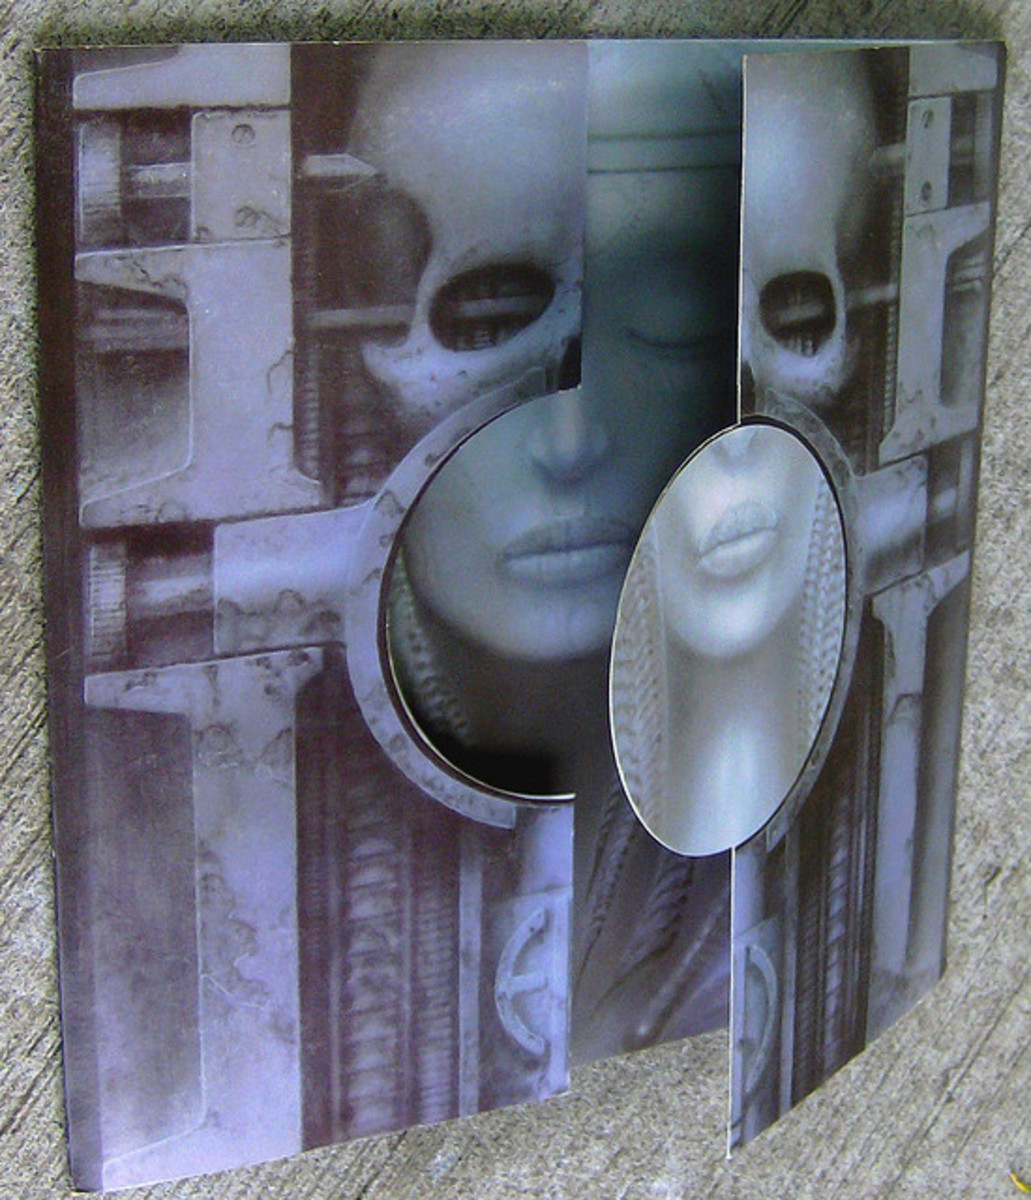 Brain Salad Surgery was a multi-layered experience in more ways than one.